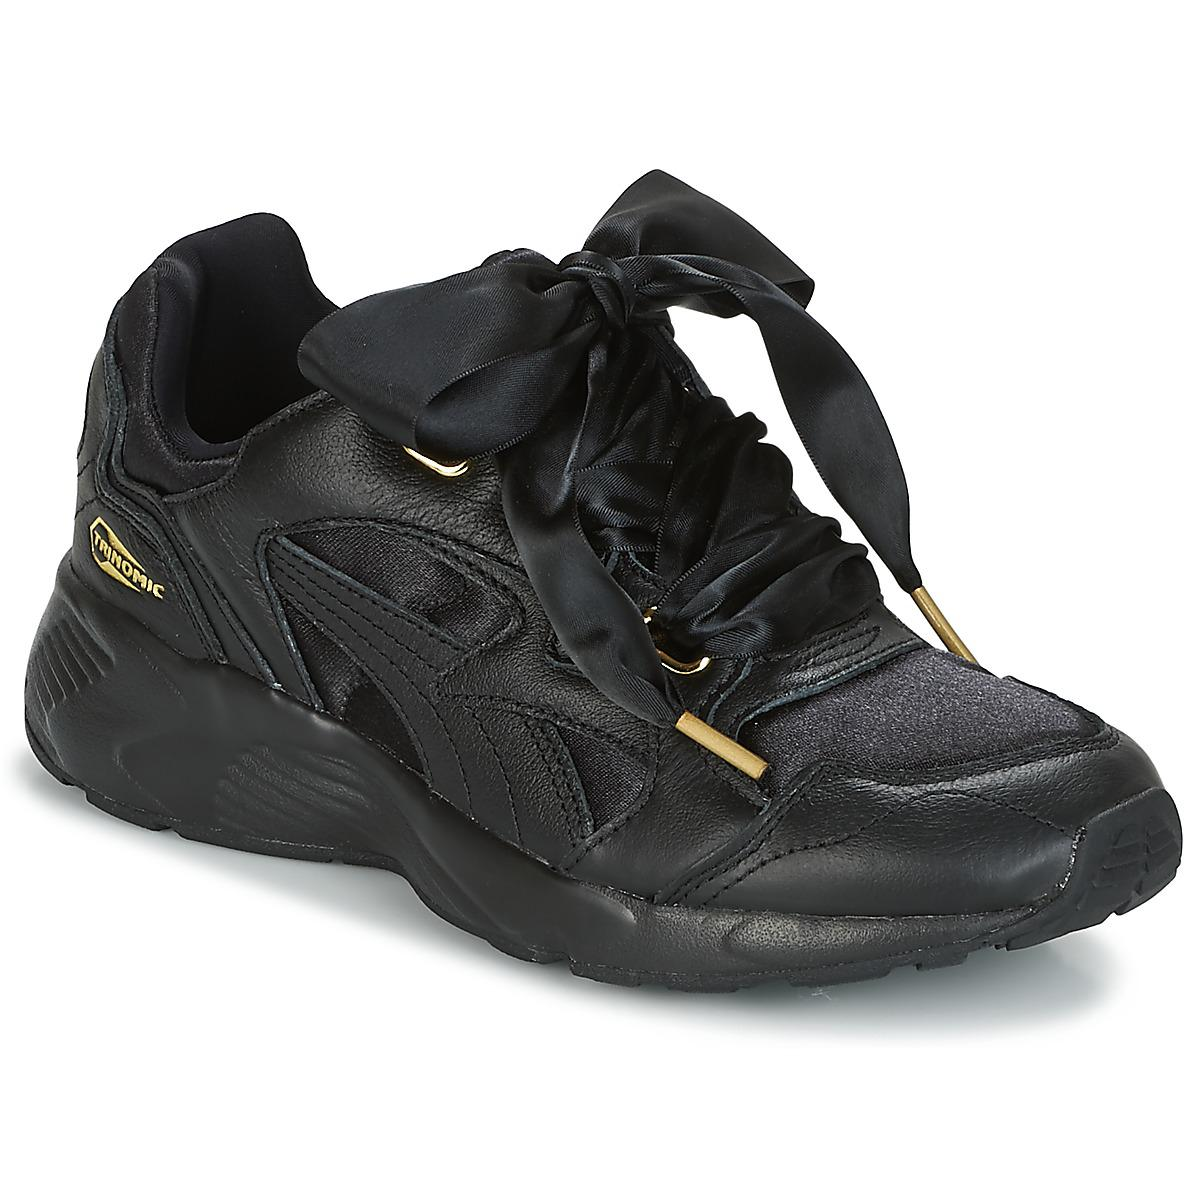 178c1e13c7d85 PUMA Prevail Heart Satin Women s Shoes (trainers) In Black in Black ...